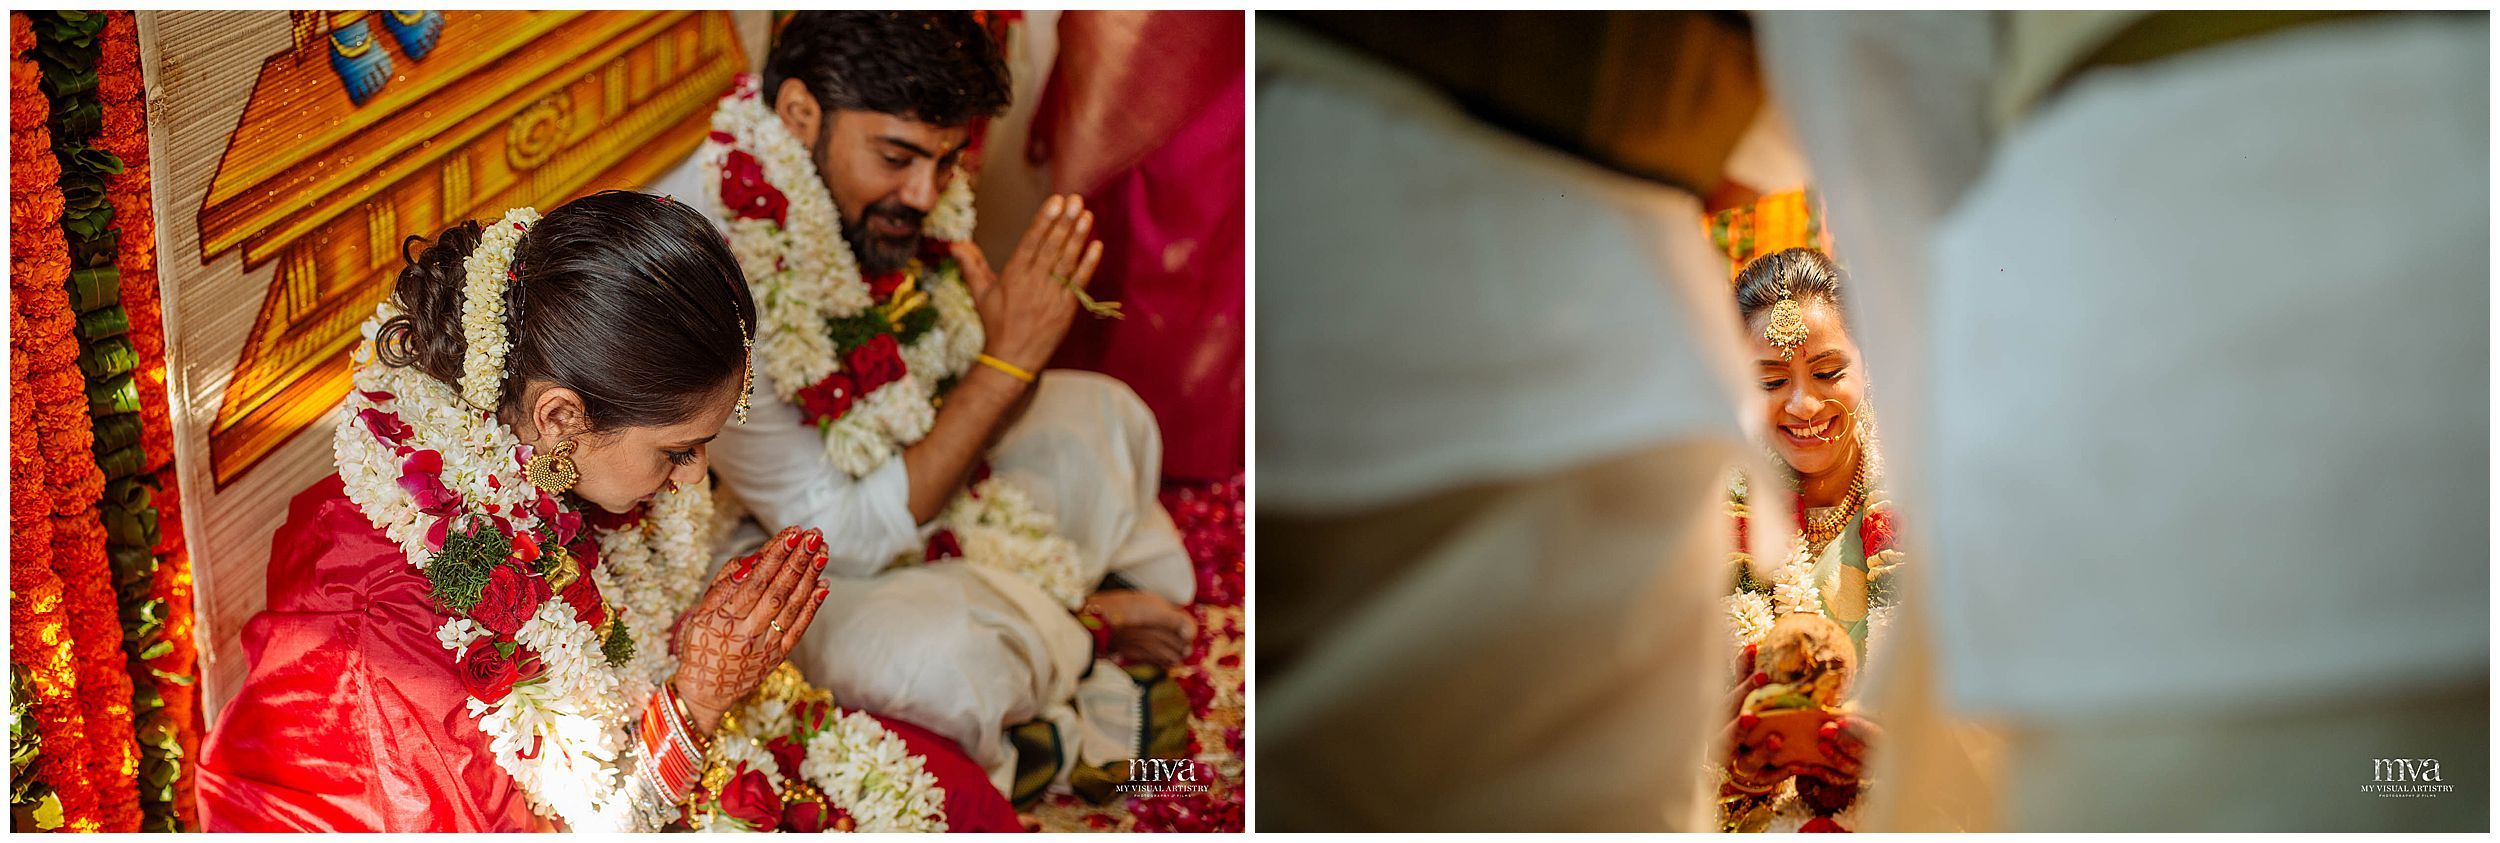 SAHIBA_KARTHIK_MYVISUALARTISTRY_WEDDING_PHOTOGRAPHY_MVA_KERALA_GURGAON_0038.jpg